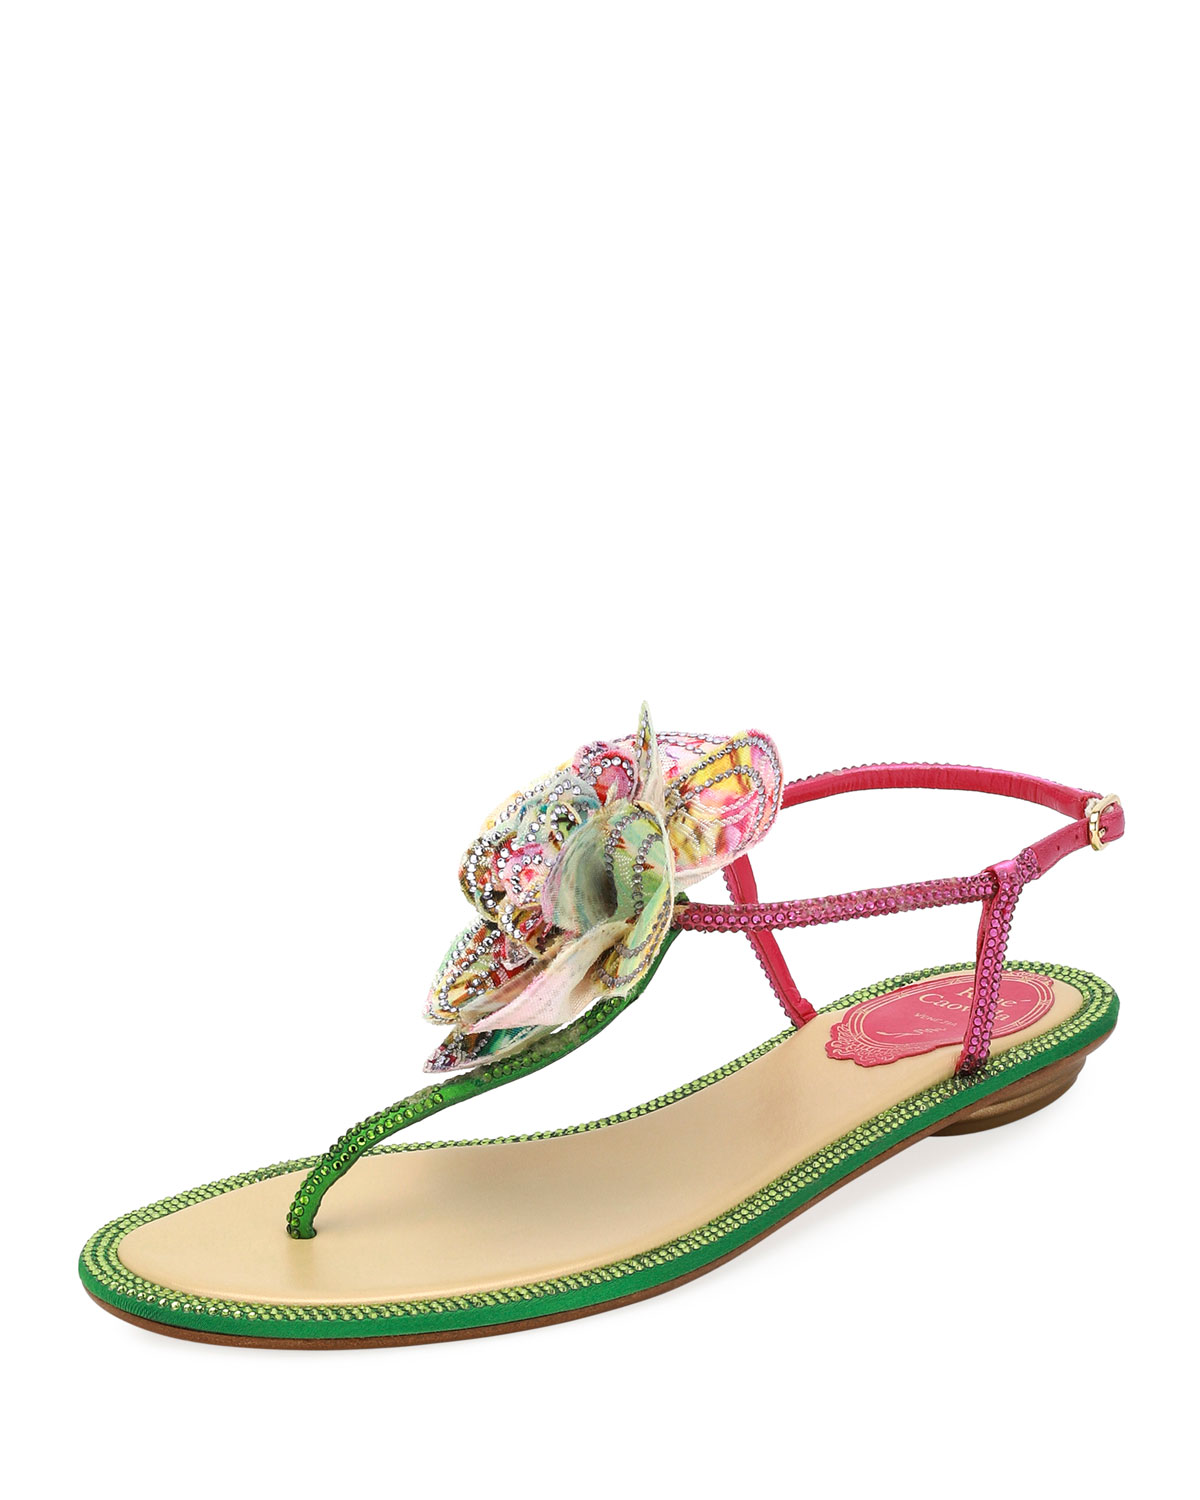 ebeb33ca0e2db3 Rene Caovilla Embellished Leather Flat Sandal w  Flower